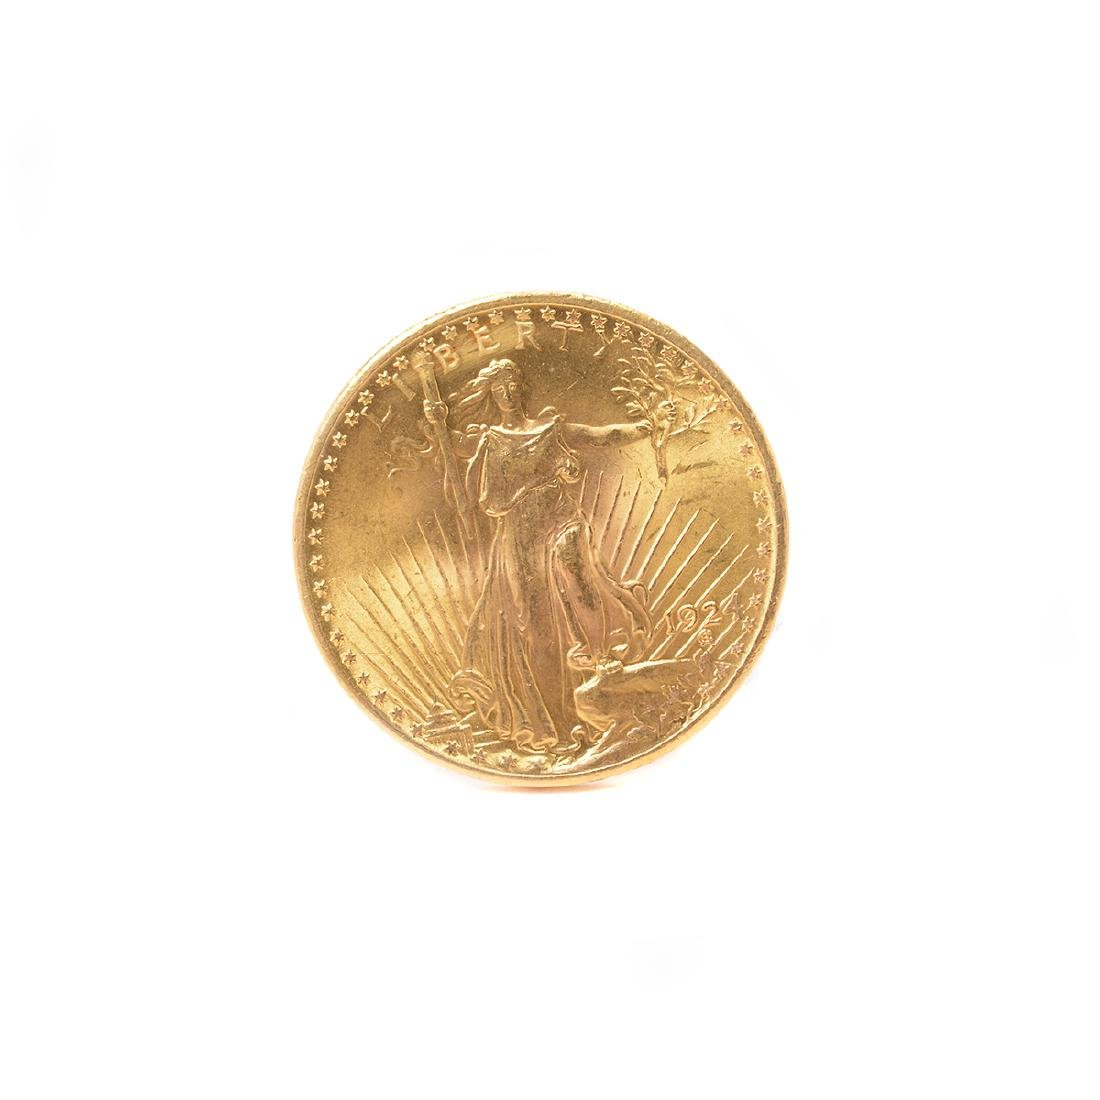 US 1924 Saint-Gaudens Gold $20.00 Coin